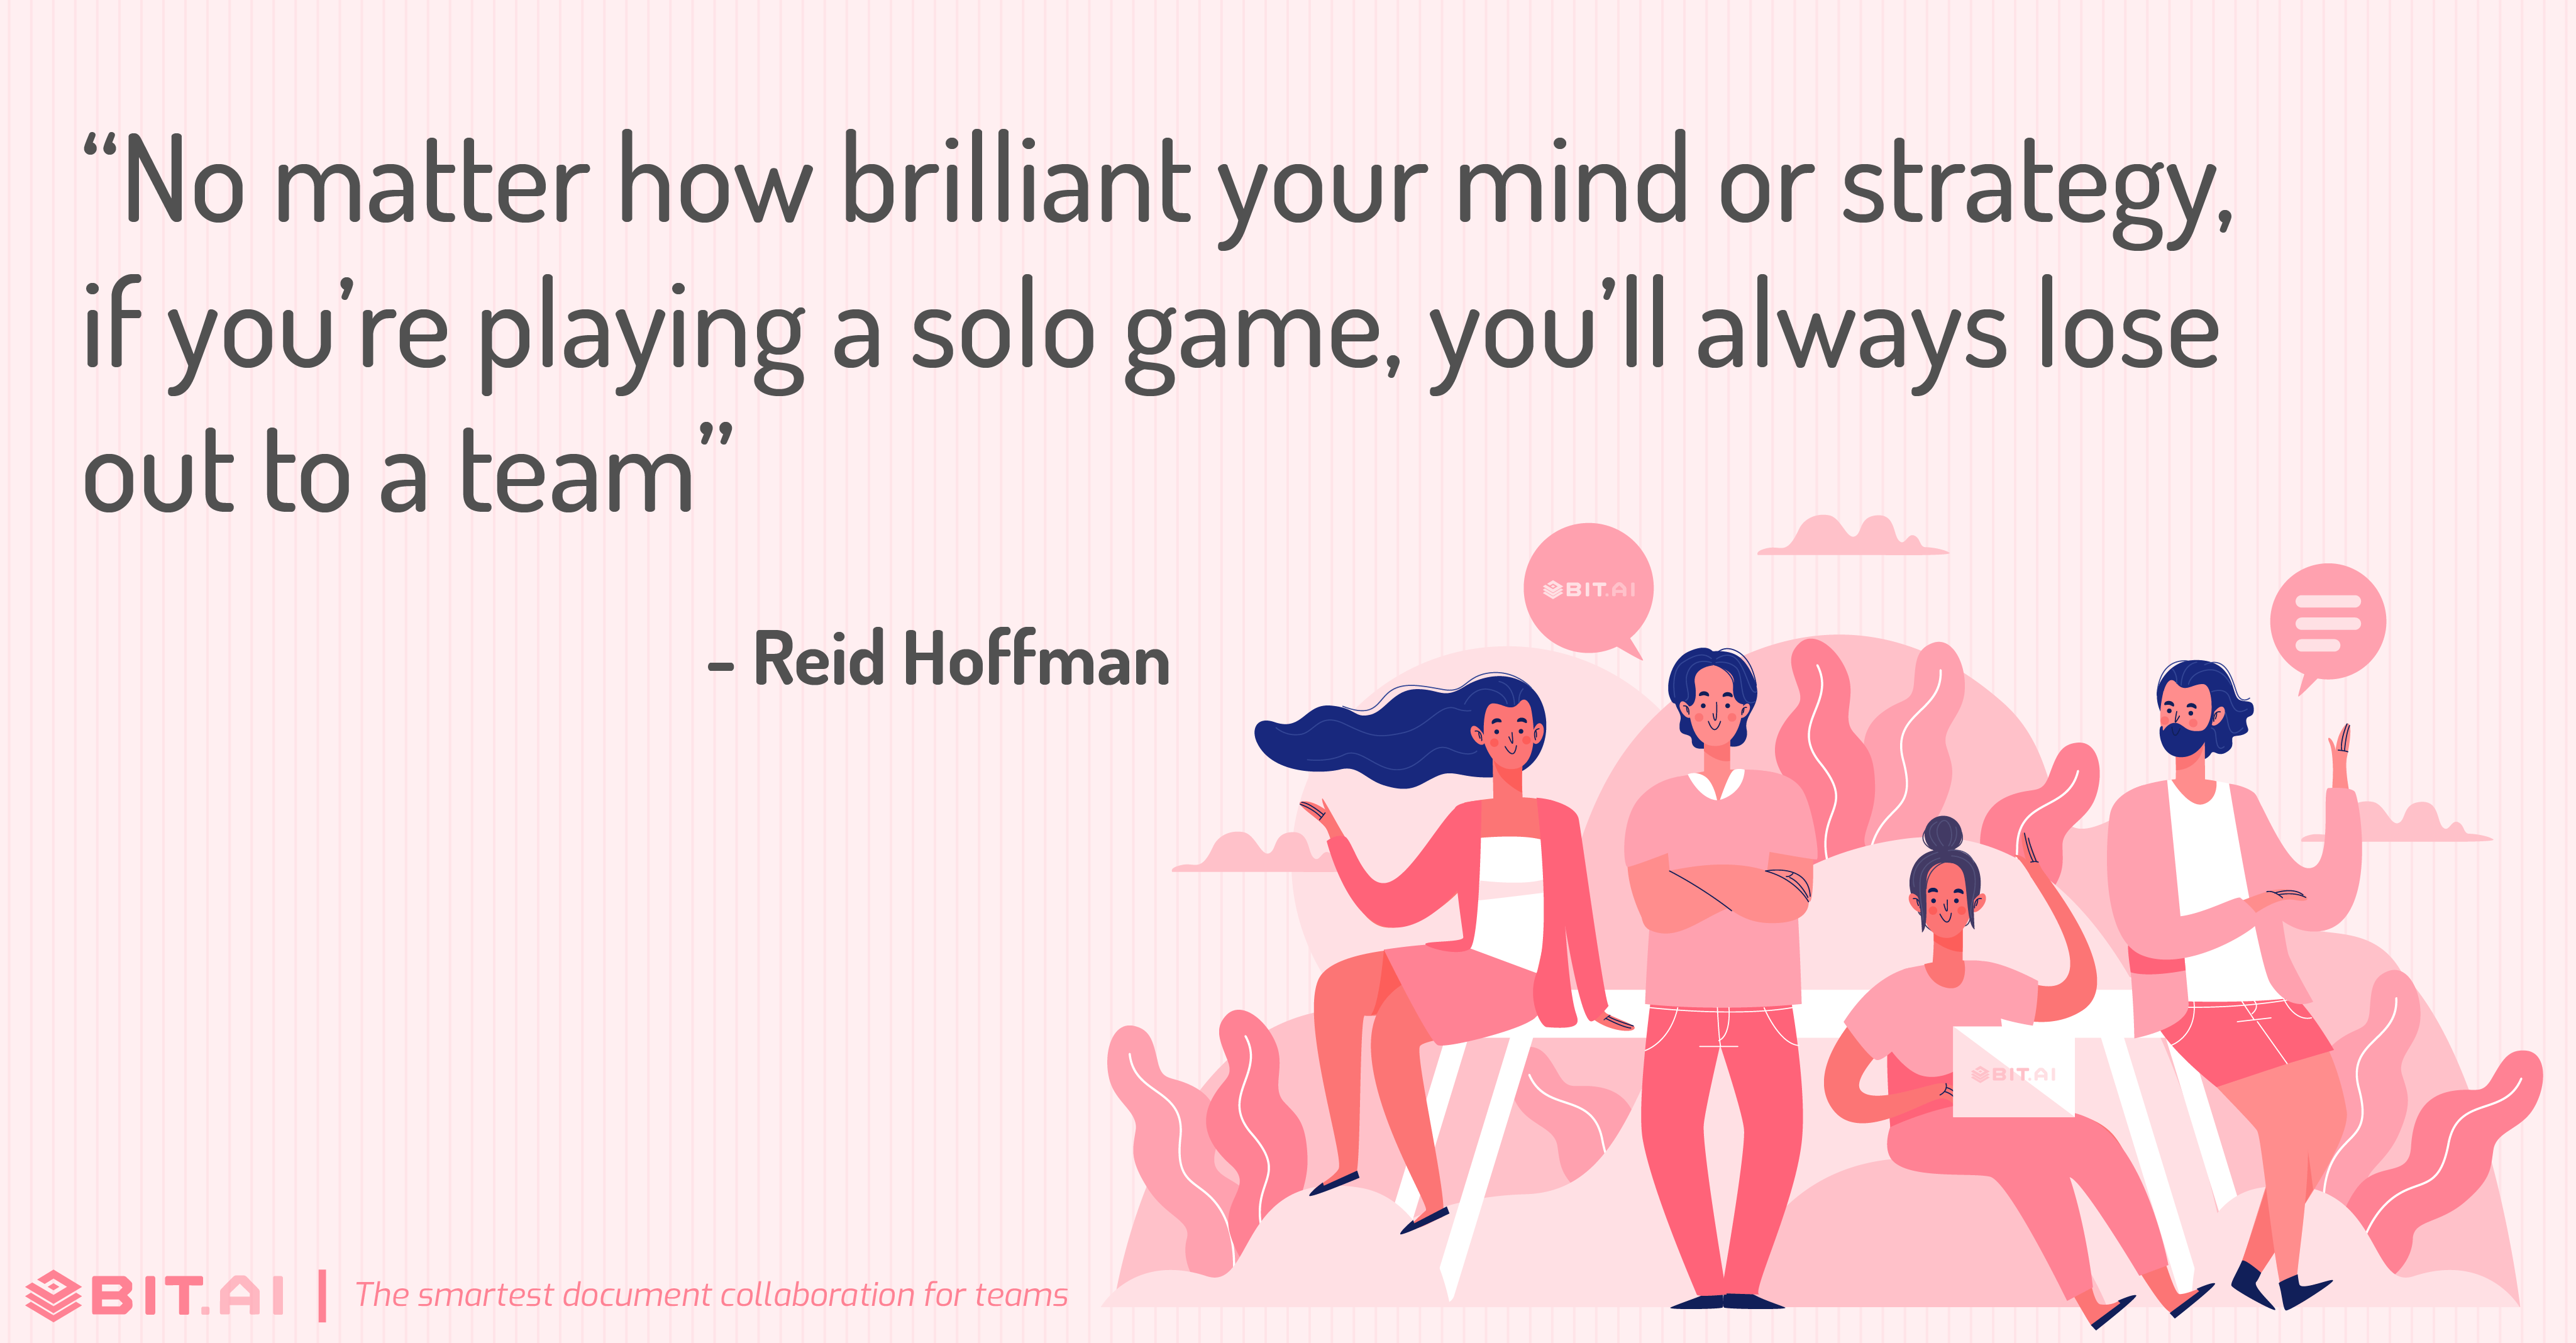 """No matter how brilliant your mind or strategy, if you're playing a solo game, you'll always lose out to a team"" - Reid Hoffman"